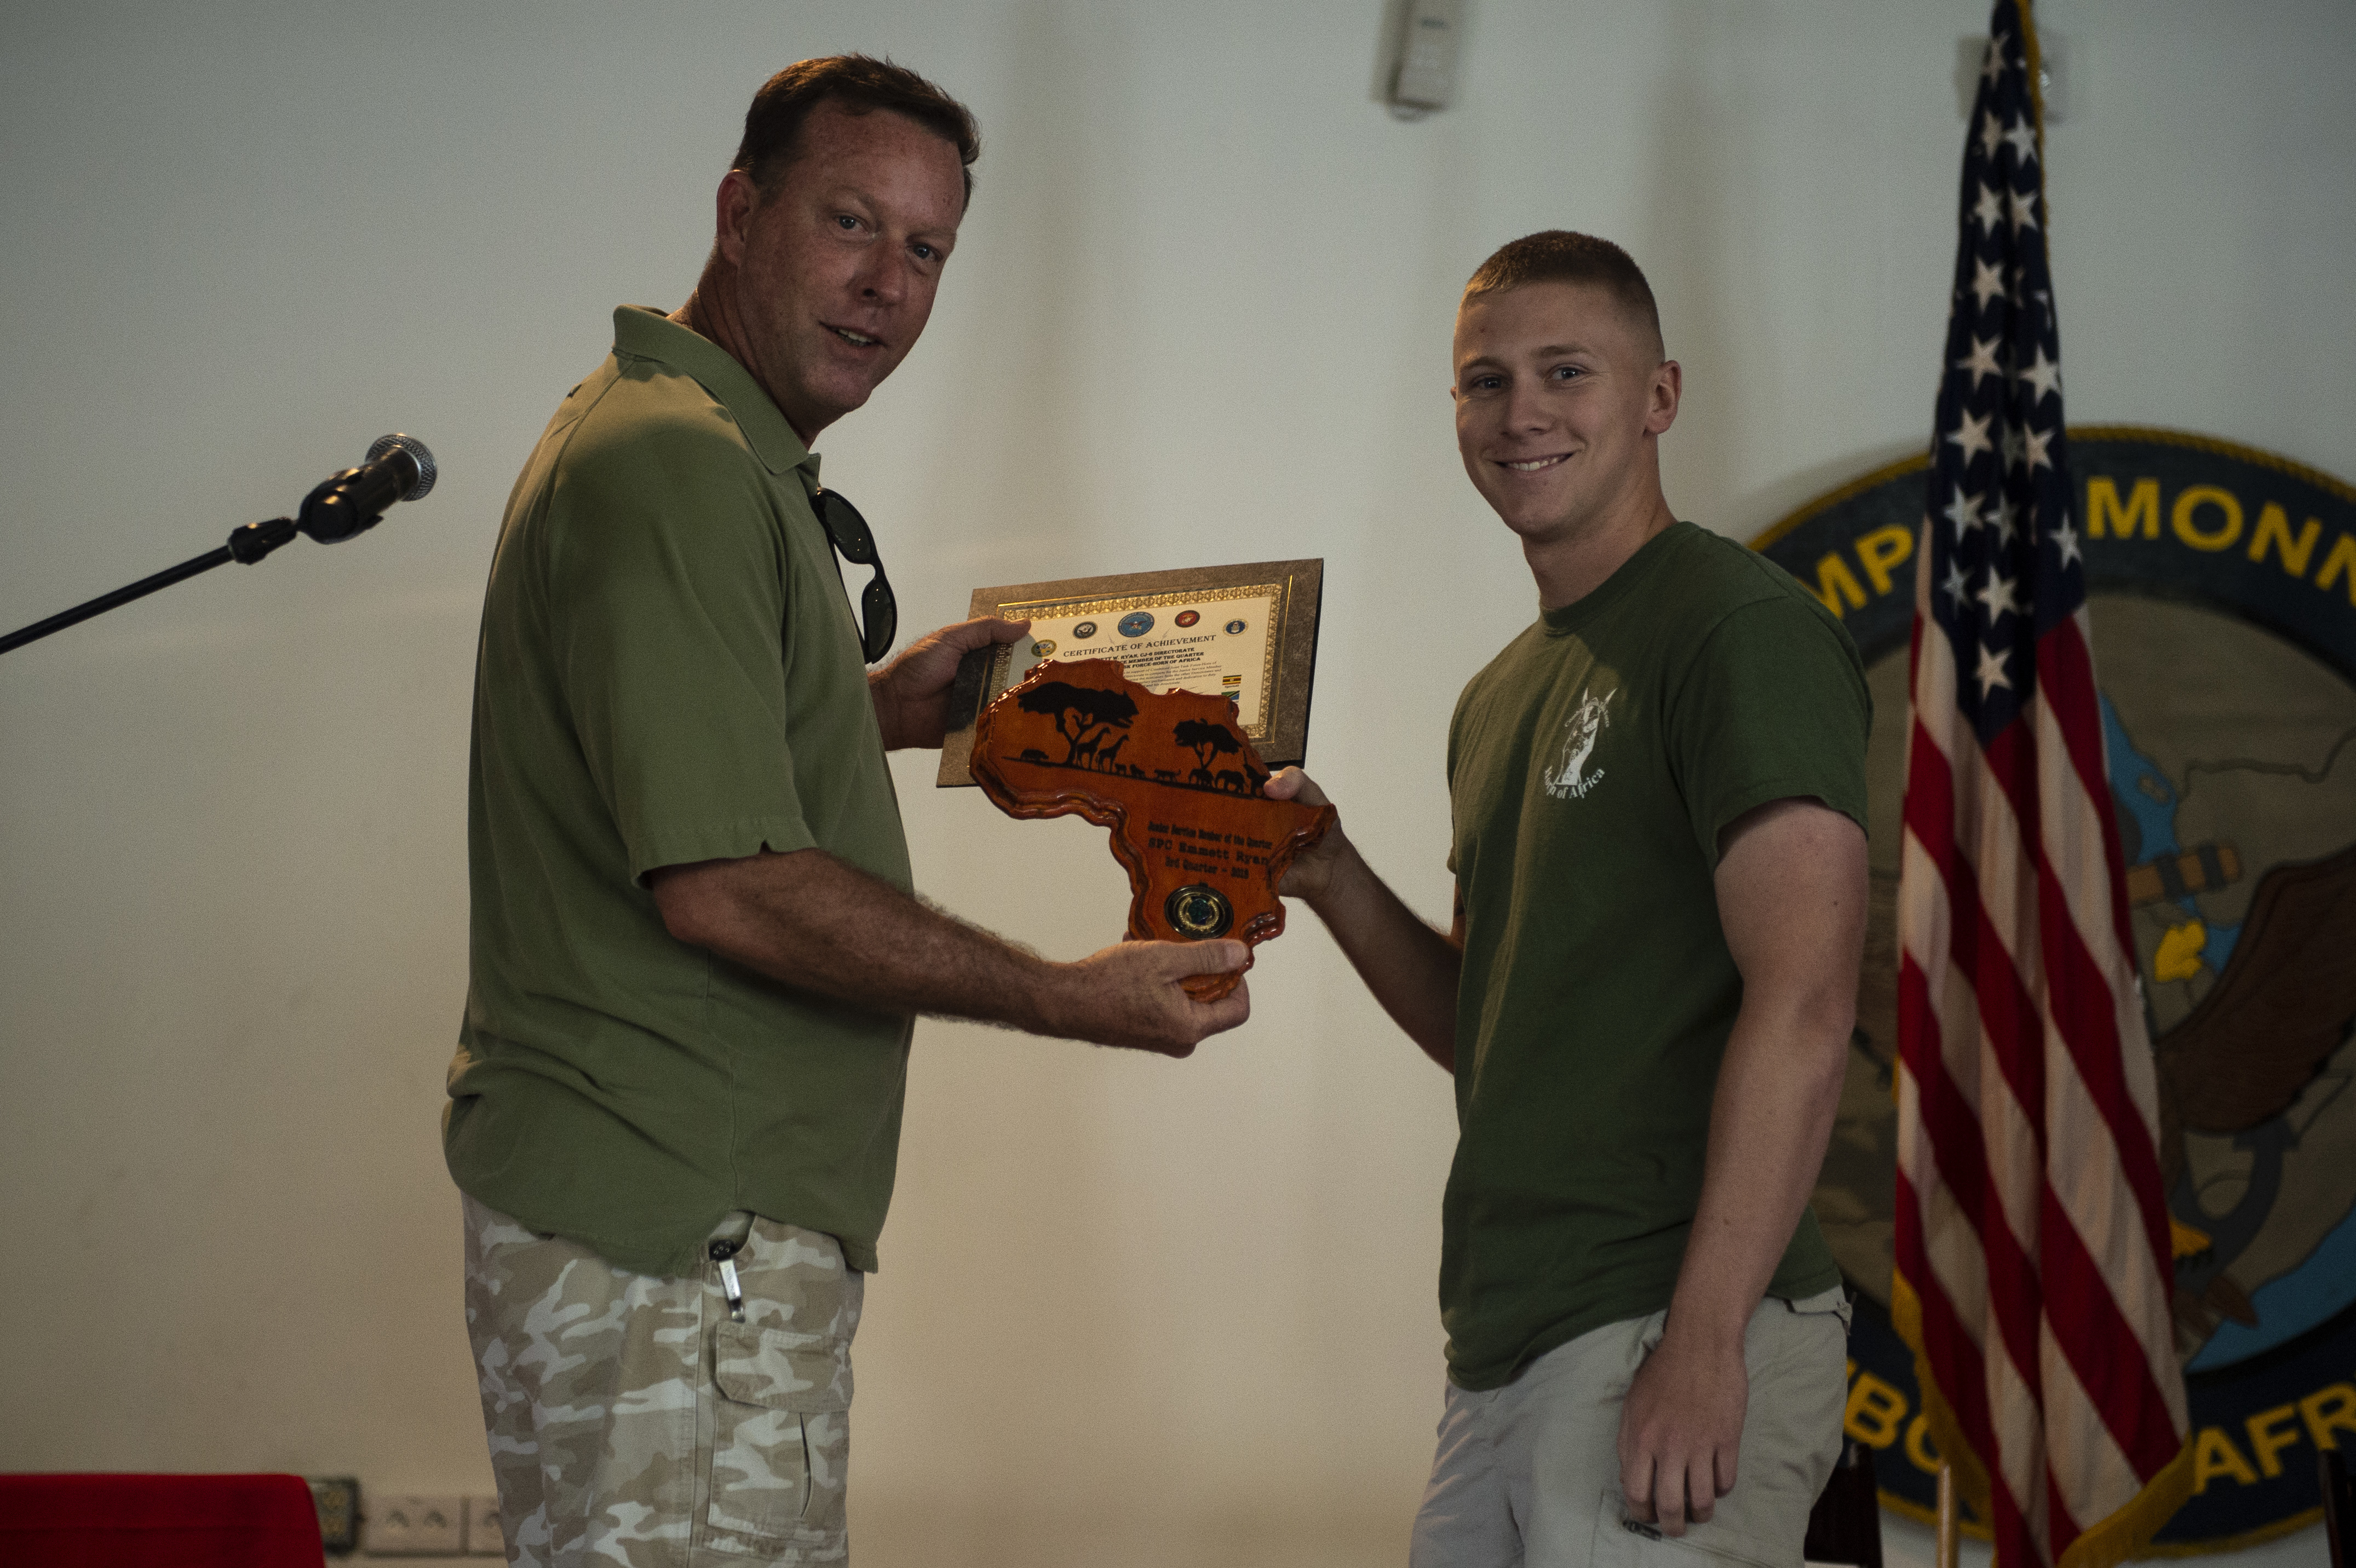 Combined Joint Task Force-Horn of Africa's Senior Enlisted Leader, Command Master Chief Karl W. Parsons, presents a quarterly award plaque and certificate to U.S. Army Spc. Emmett M. Ryan, communications specialist for CJTF-HOA, on Camp Lemonnier, Djibouti, Oct. 20, 2018. Ryan was recognized as the CJTF-HOA Junior Service Member of the Quarter during a CJTF-HOA all-hands call. (U.S. Air Force photo by Senior Airman Scott Jackson)